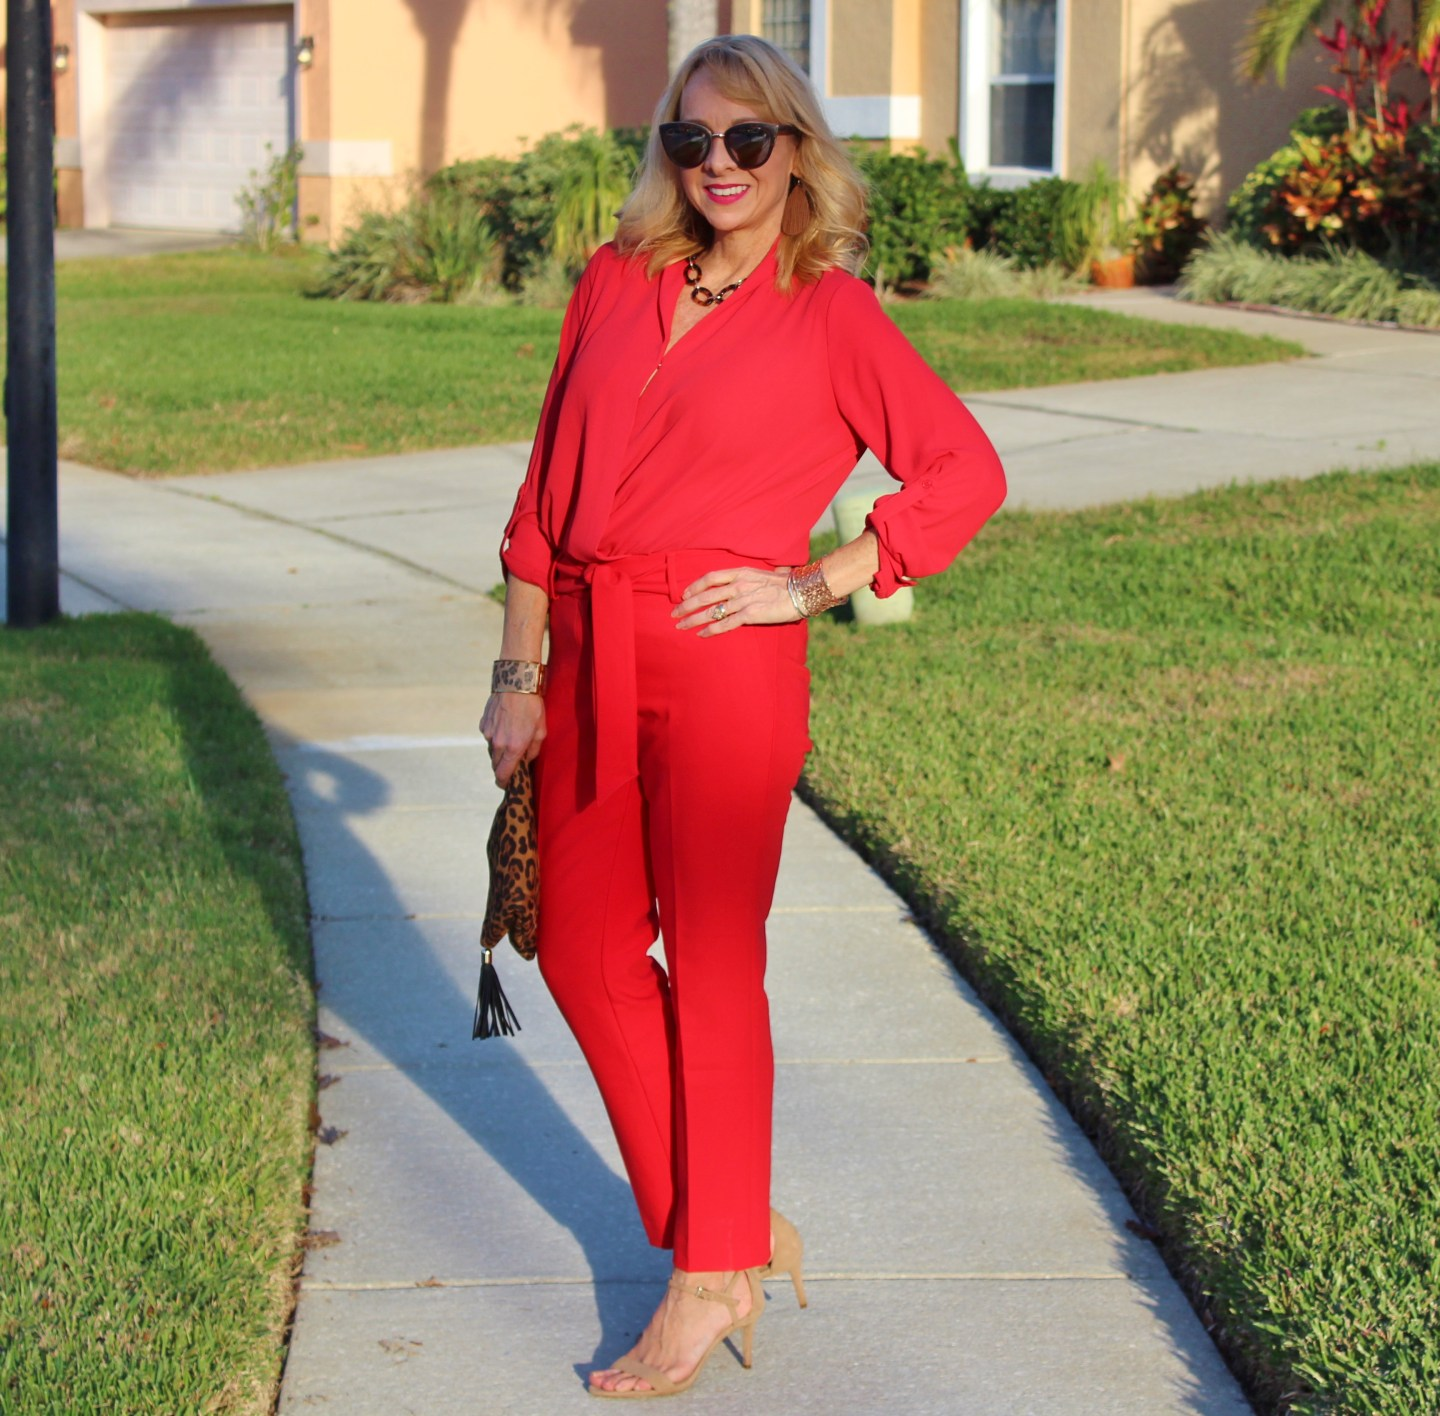 #RedPants Red Top